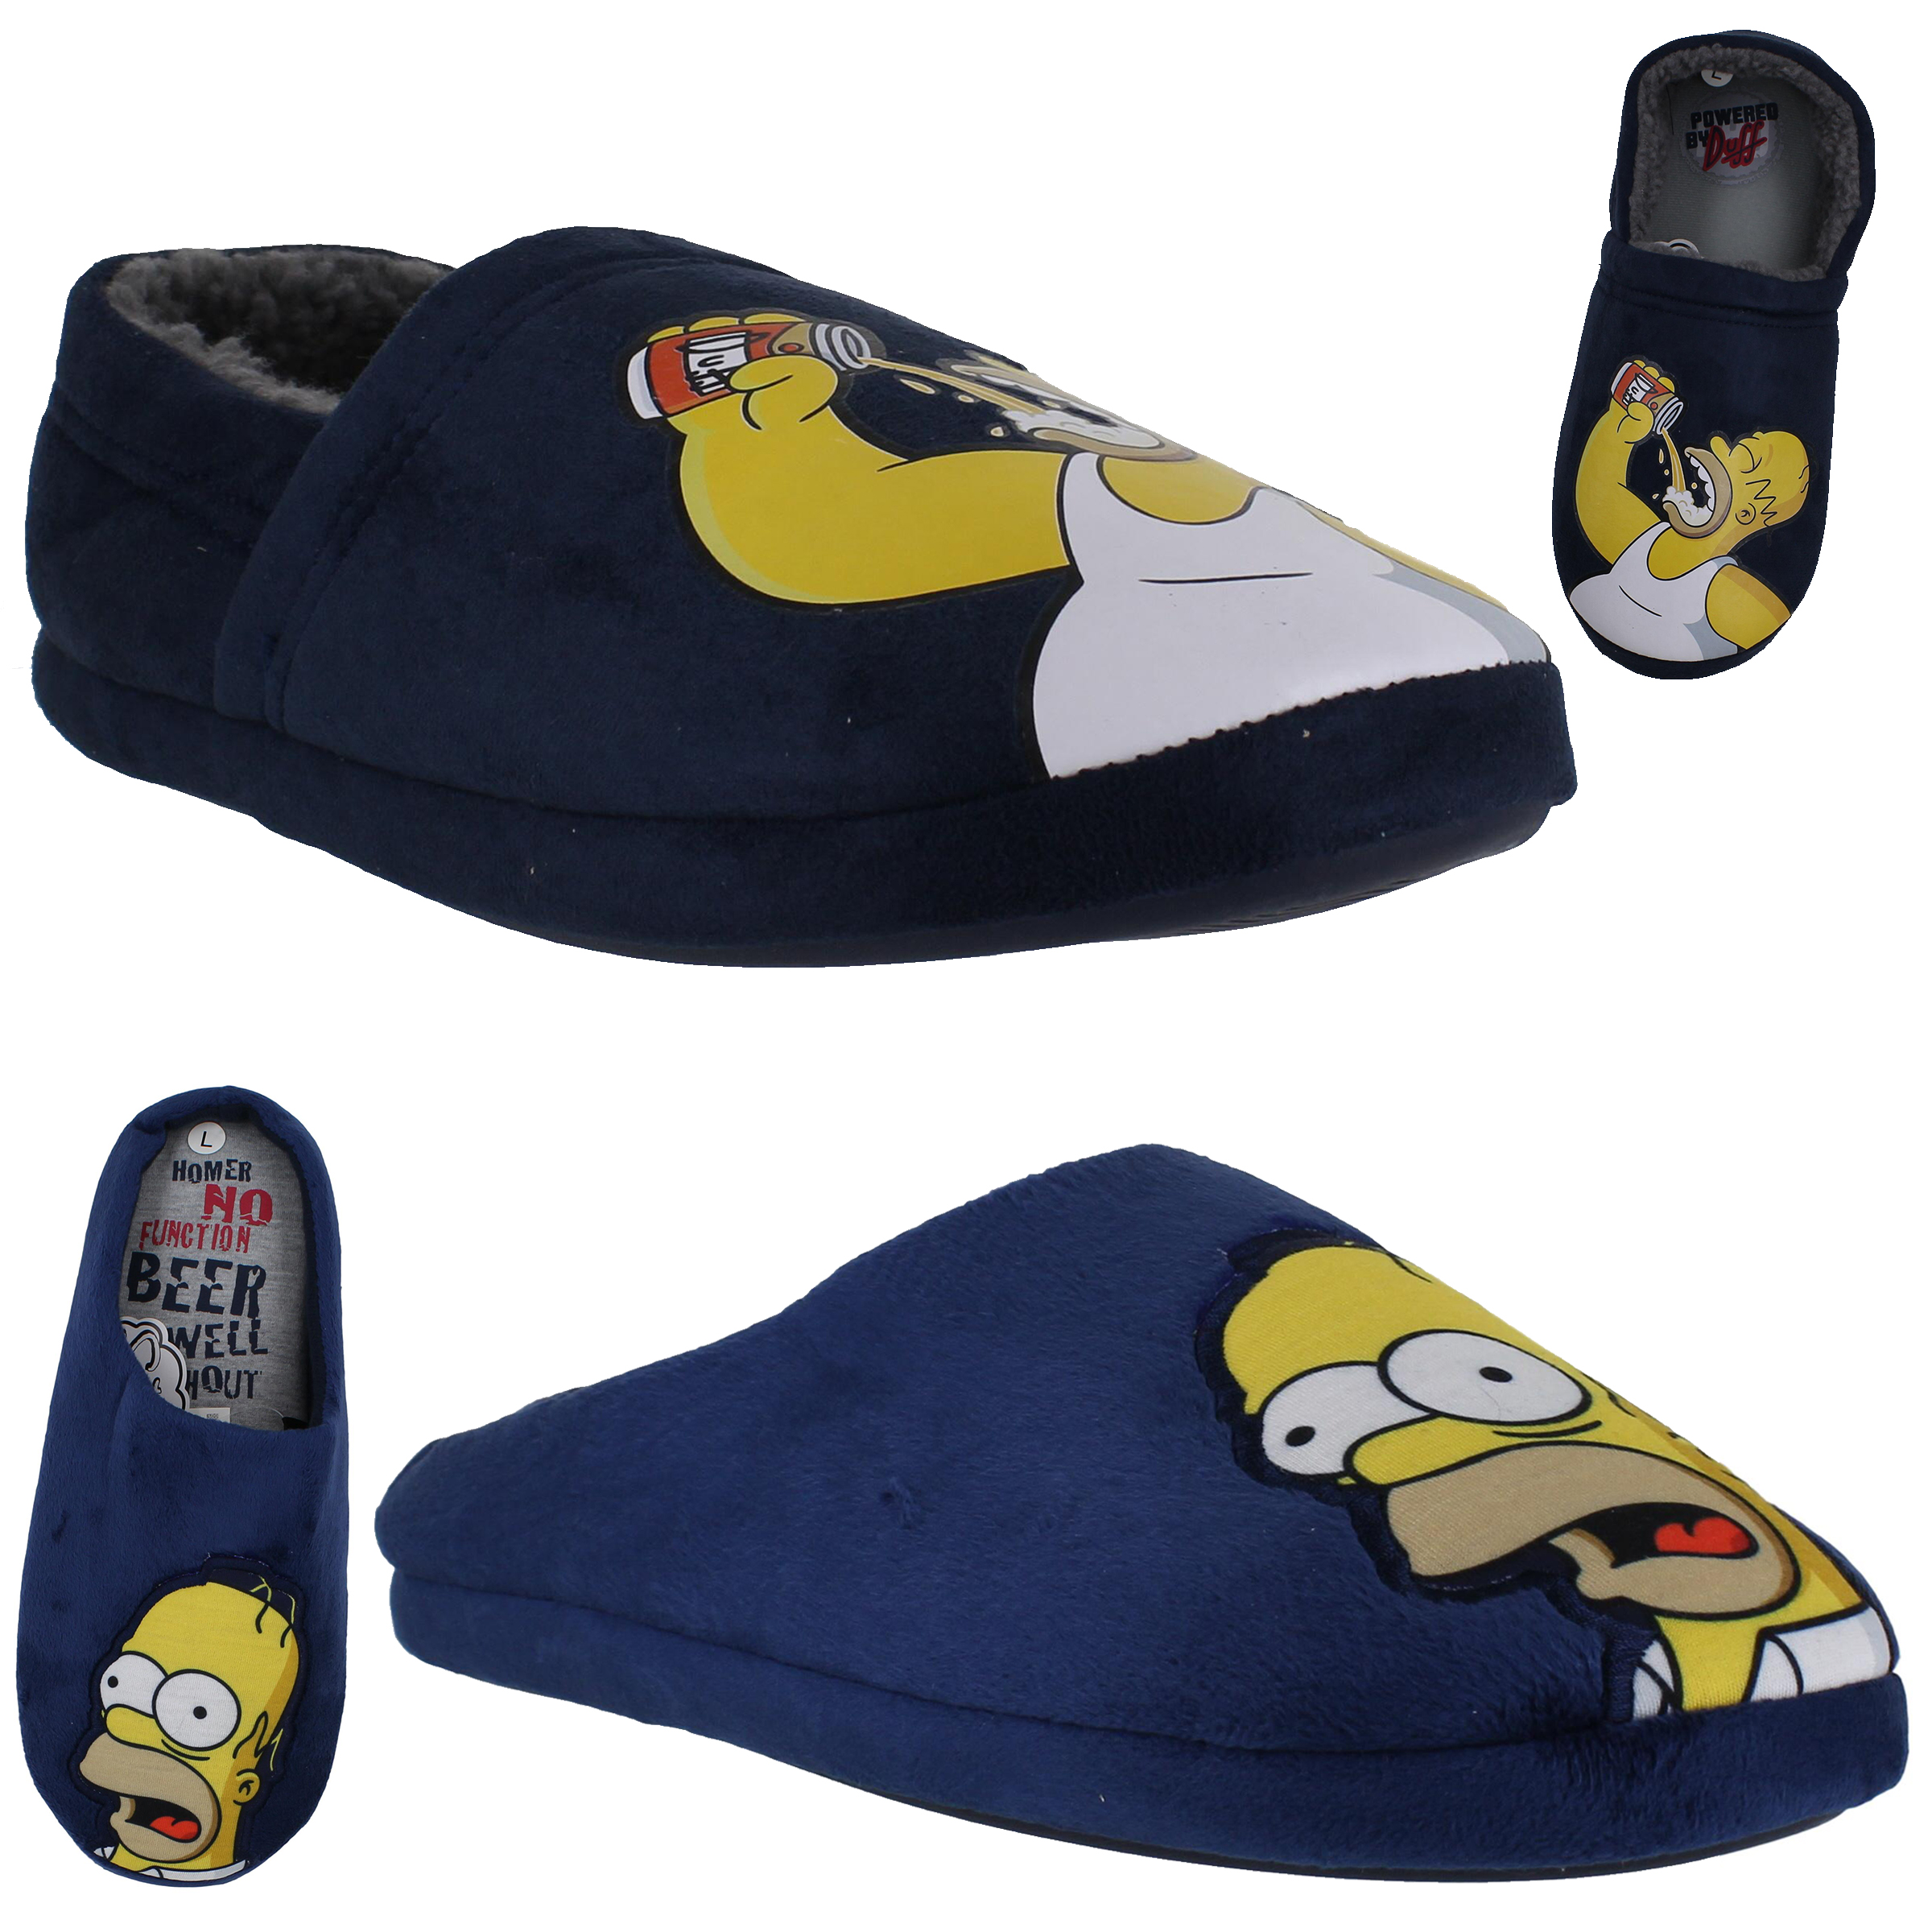 Mens Simpson Mule Slip On/Backed Cushioned Novelty Duff Slippers Sizes 6 to 11